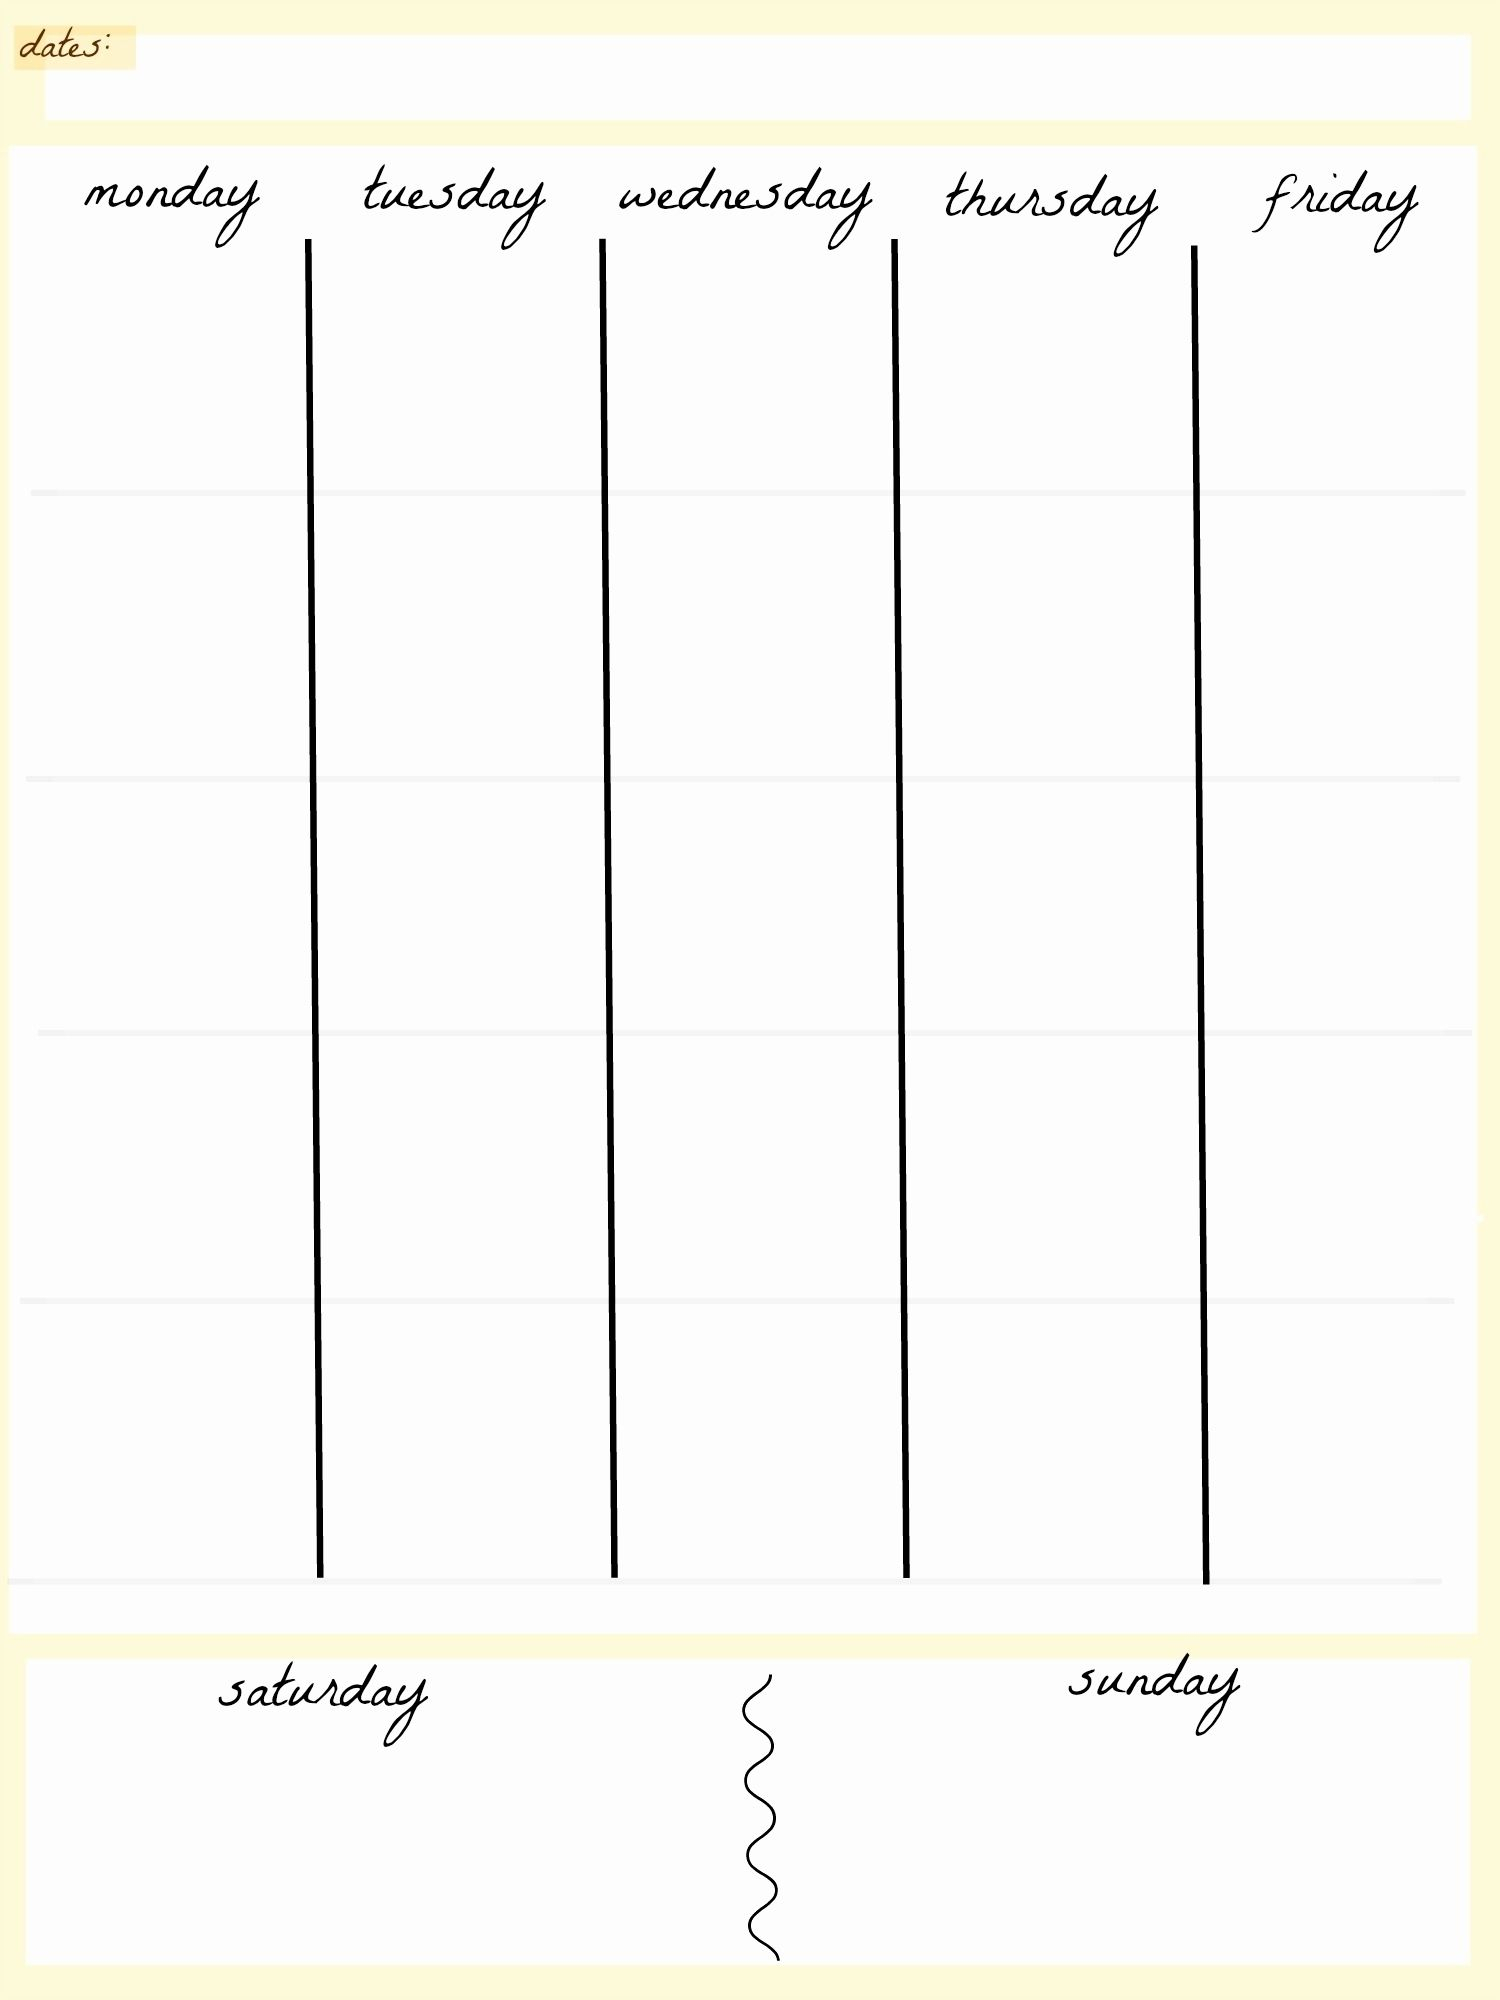 Blank Calendar 5 Day Week | Blank Calendar Template Dowload inside 5 Day Calendar Printable